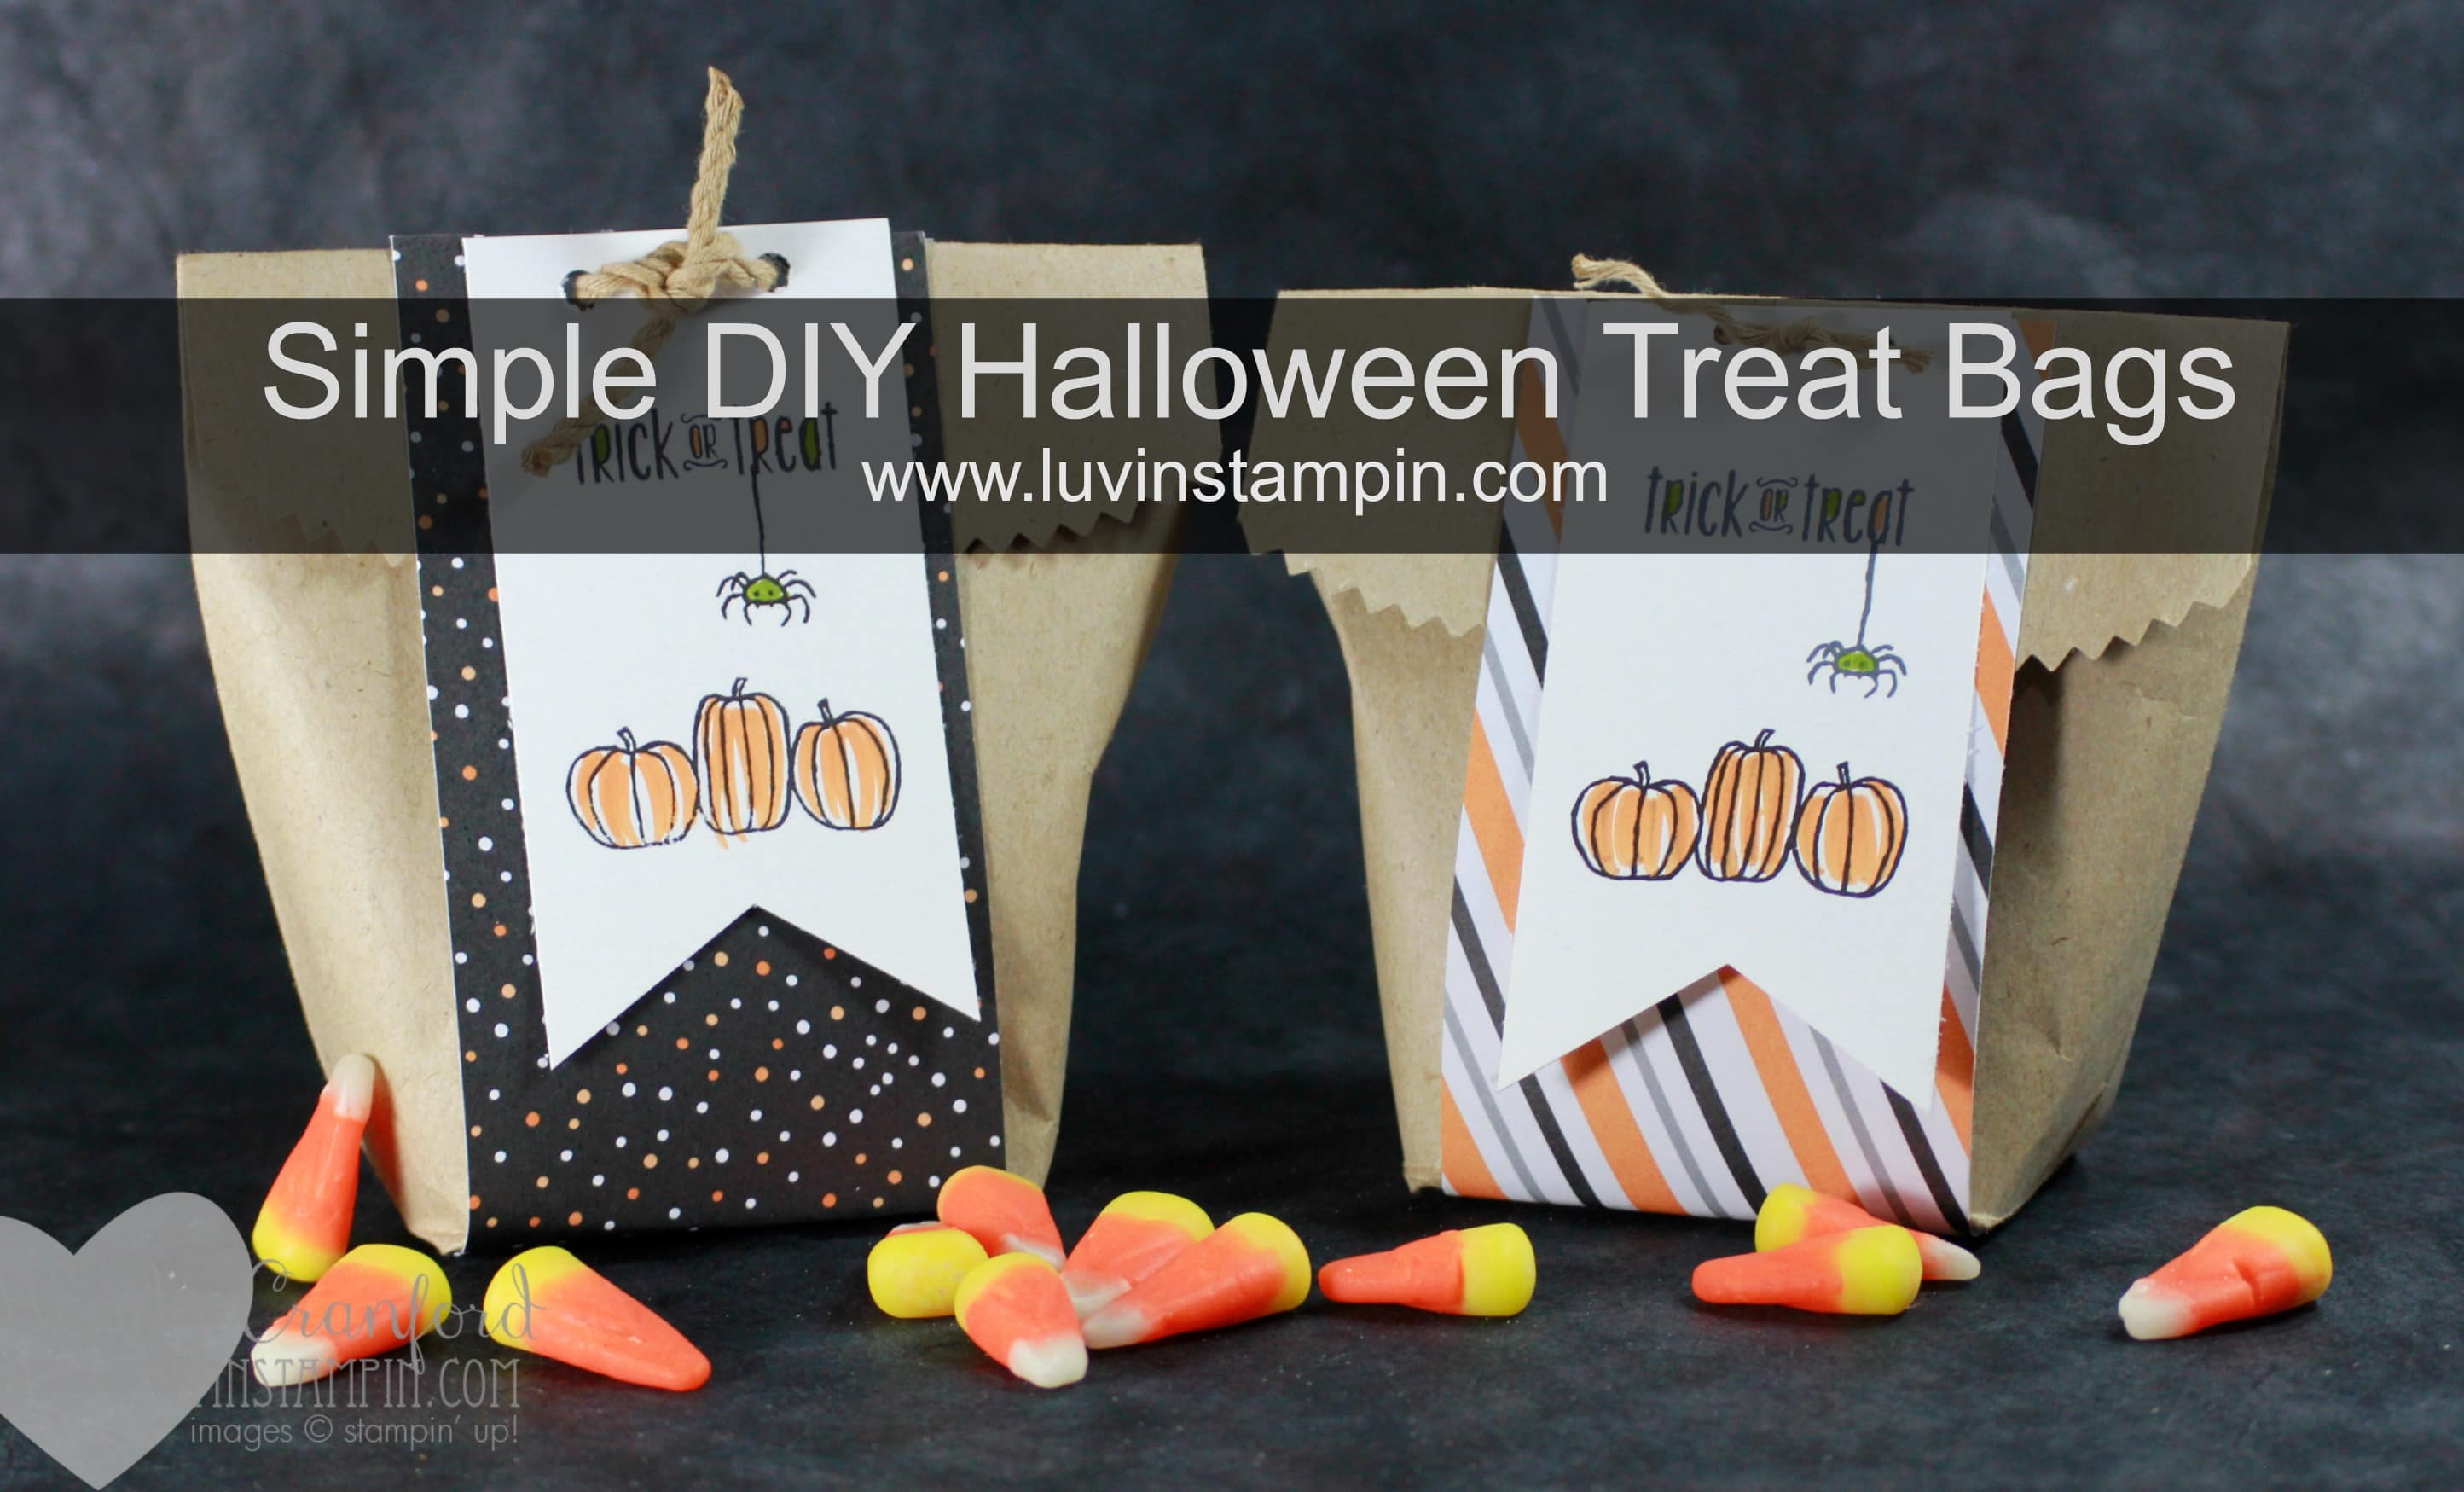 simple diy halloween treat bags to give at school or to friends and family featuring